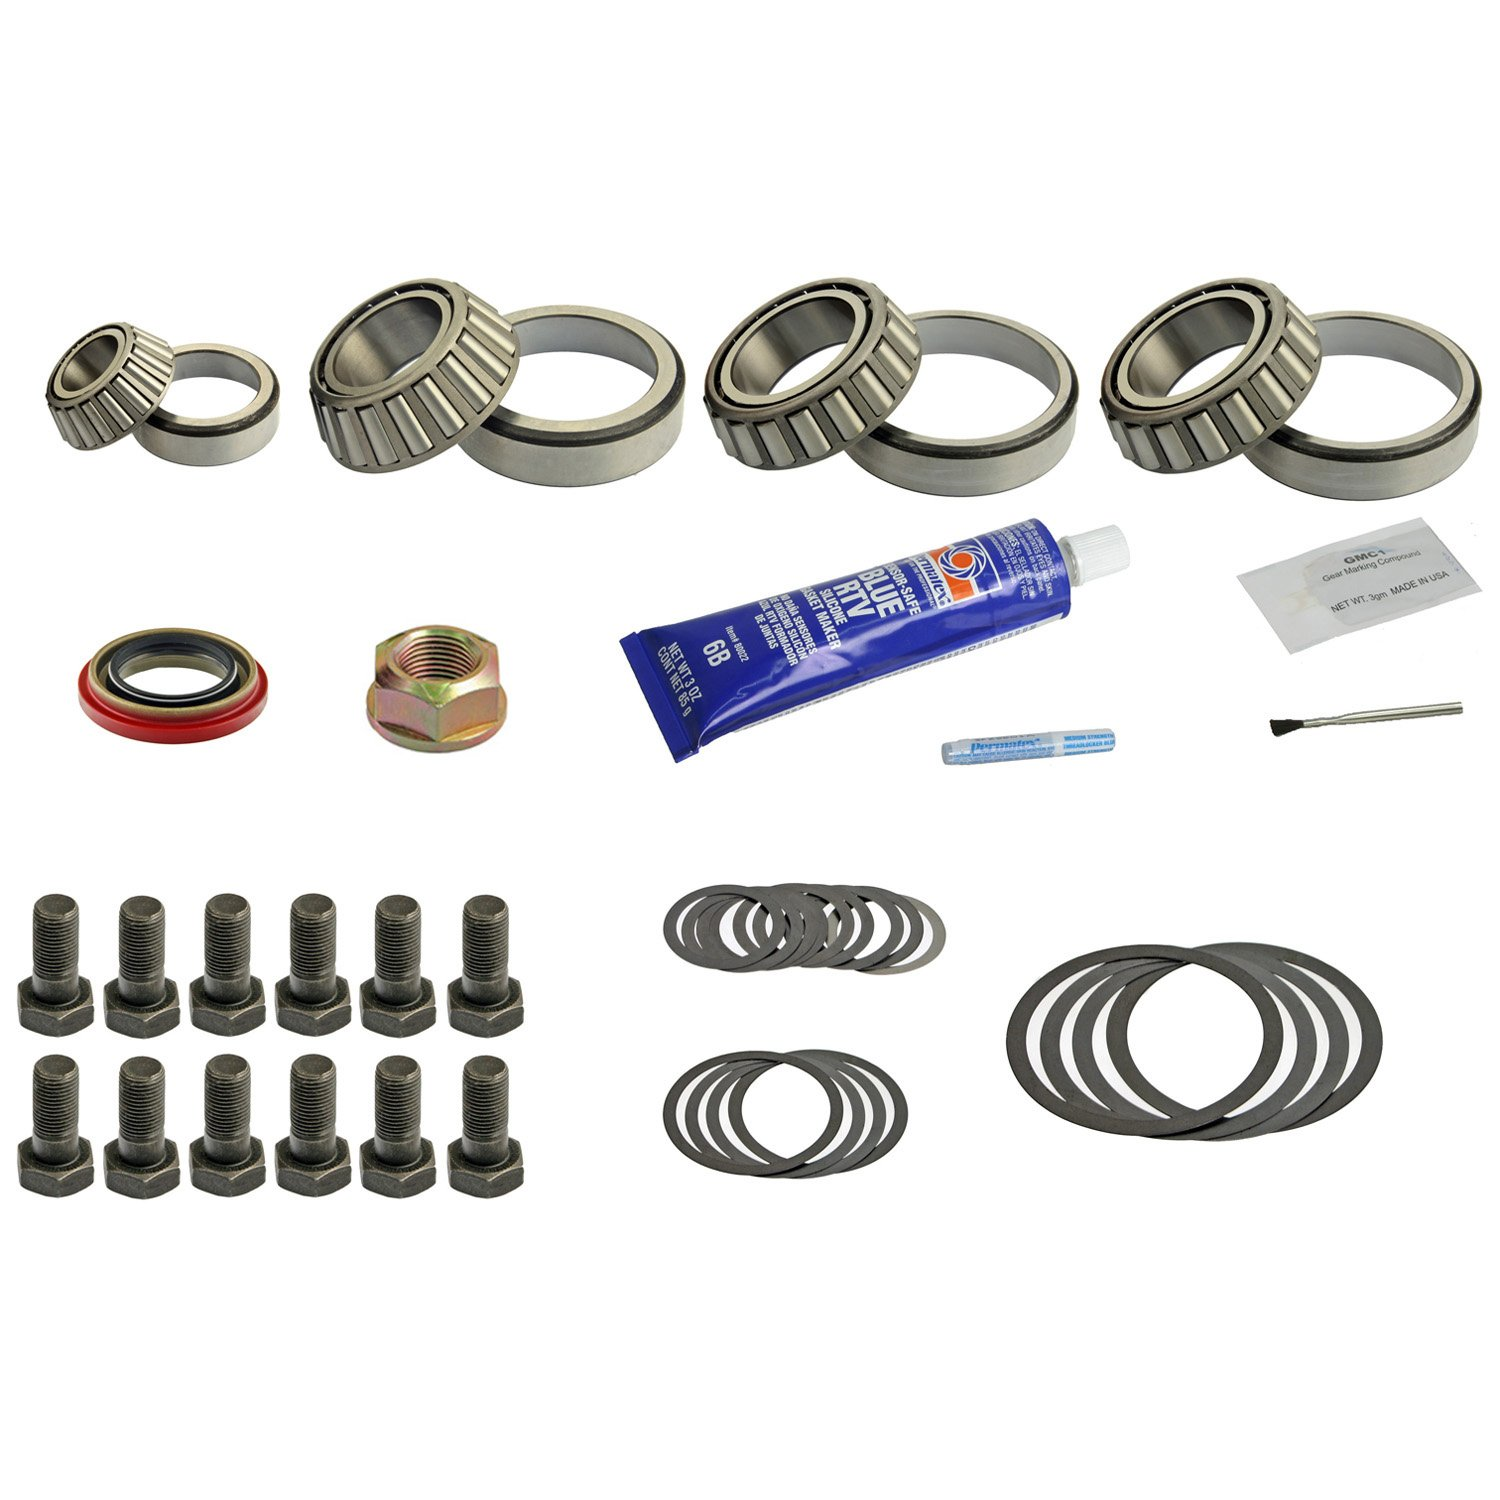 DRK332HDMK Dana 70HD Master Timken Differential Bearing Kit DT COMPONENTS